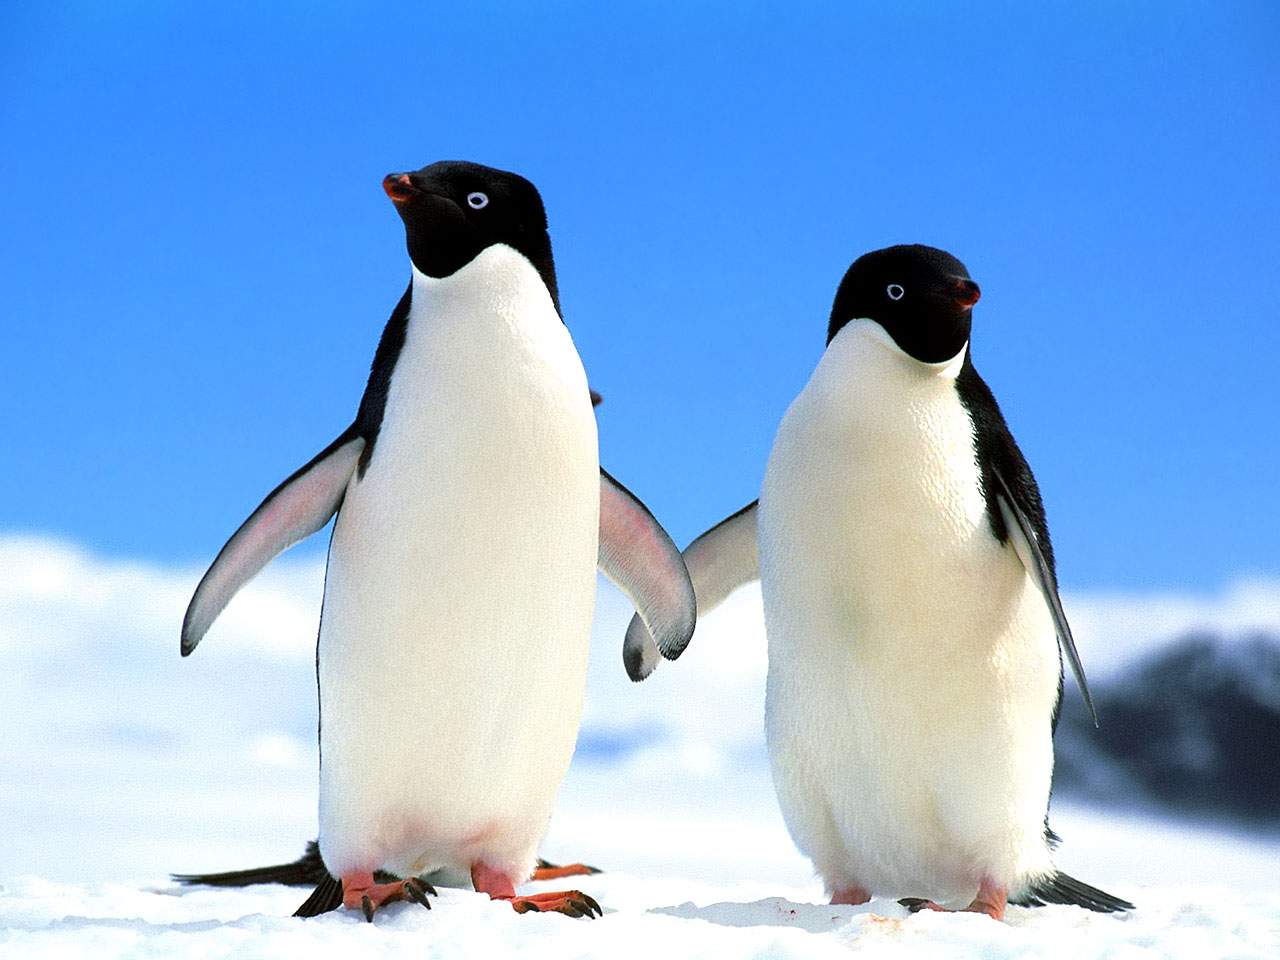 penguin animal penguins animals winter wallpapers desktop couple nature snow mighty north cutest backgrounds ever antarctic polar want mountain species